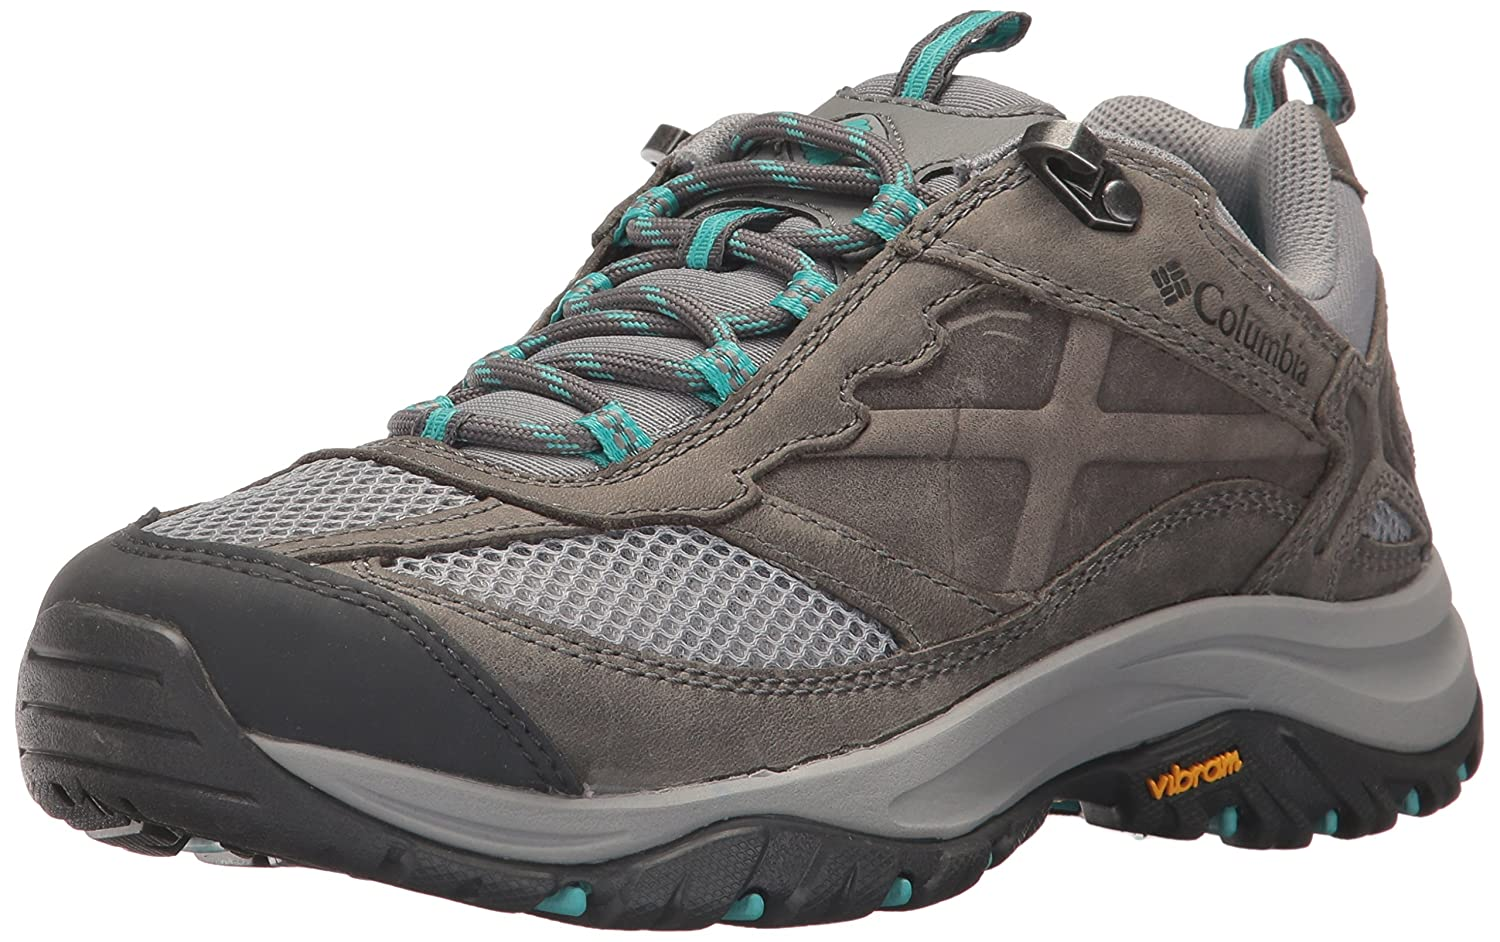 Columbia Women's Terrebonne Hiking Shoe B01N9SCQKN 12 B(M) US|Monument, Miami